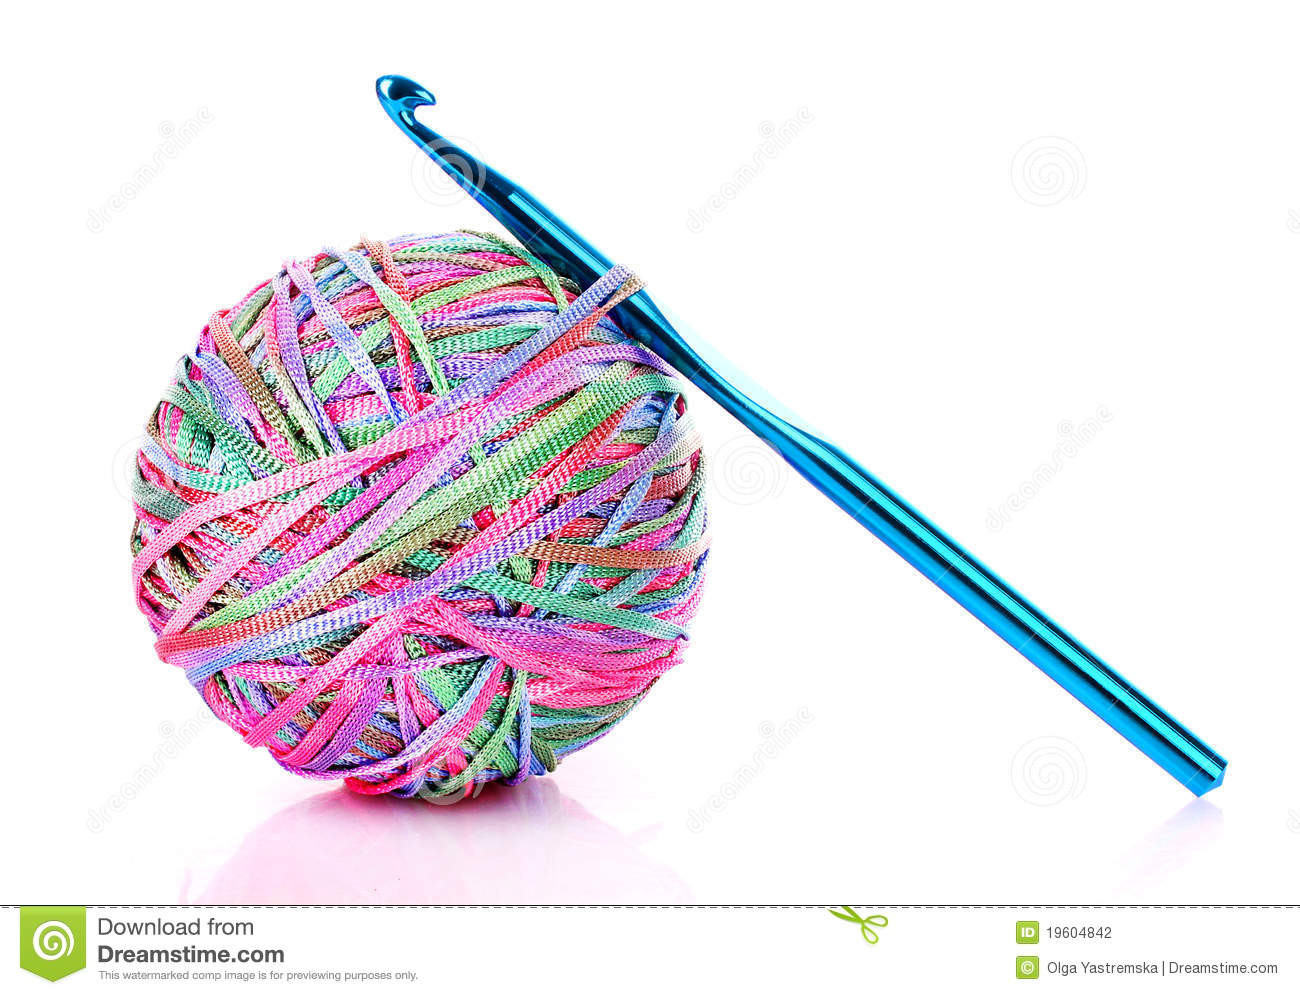 Crochet Hook and Yarn Awesome Crochet Hook and Wool Ball isolated Stock Image Of Of Superb 44 Images Crochet Hook and Yarn